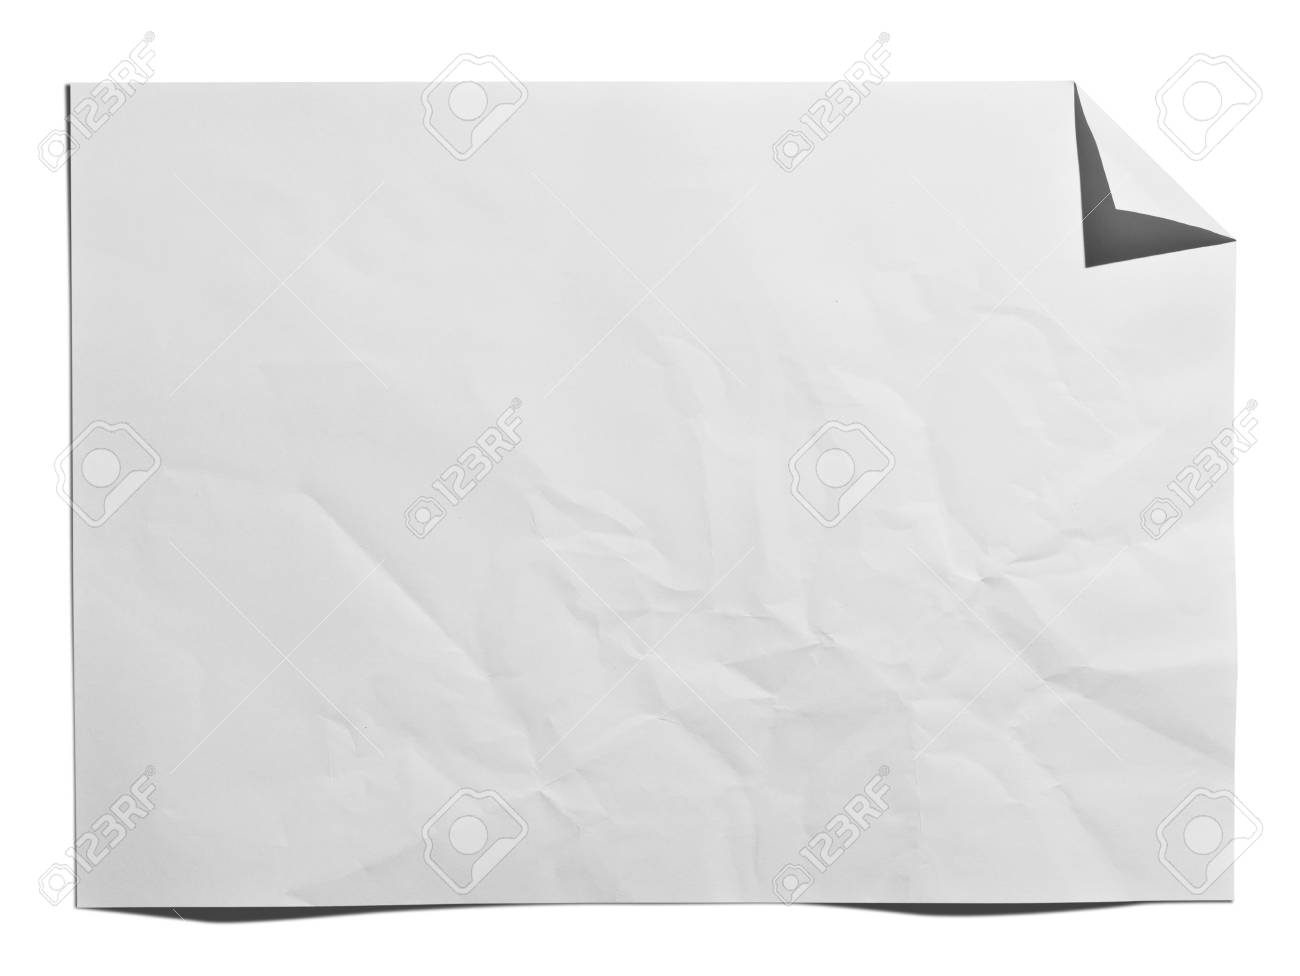 14562890-paper-texture-white-paper-sheet